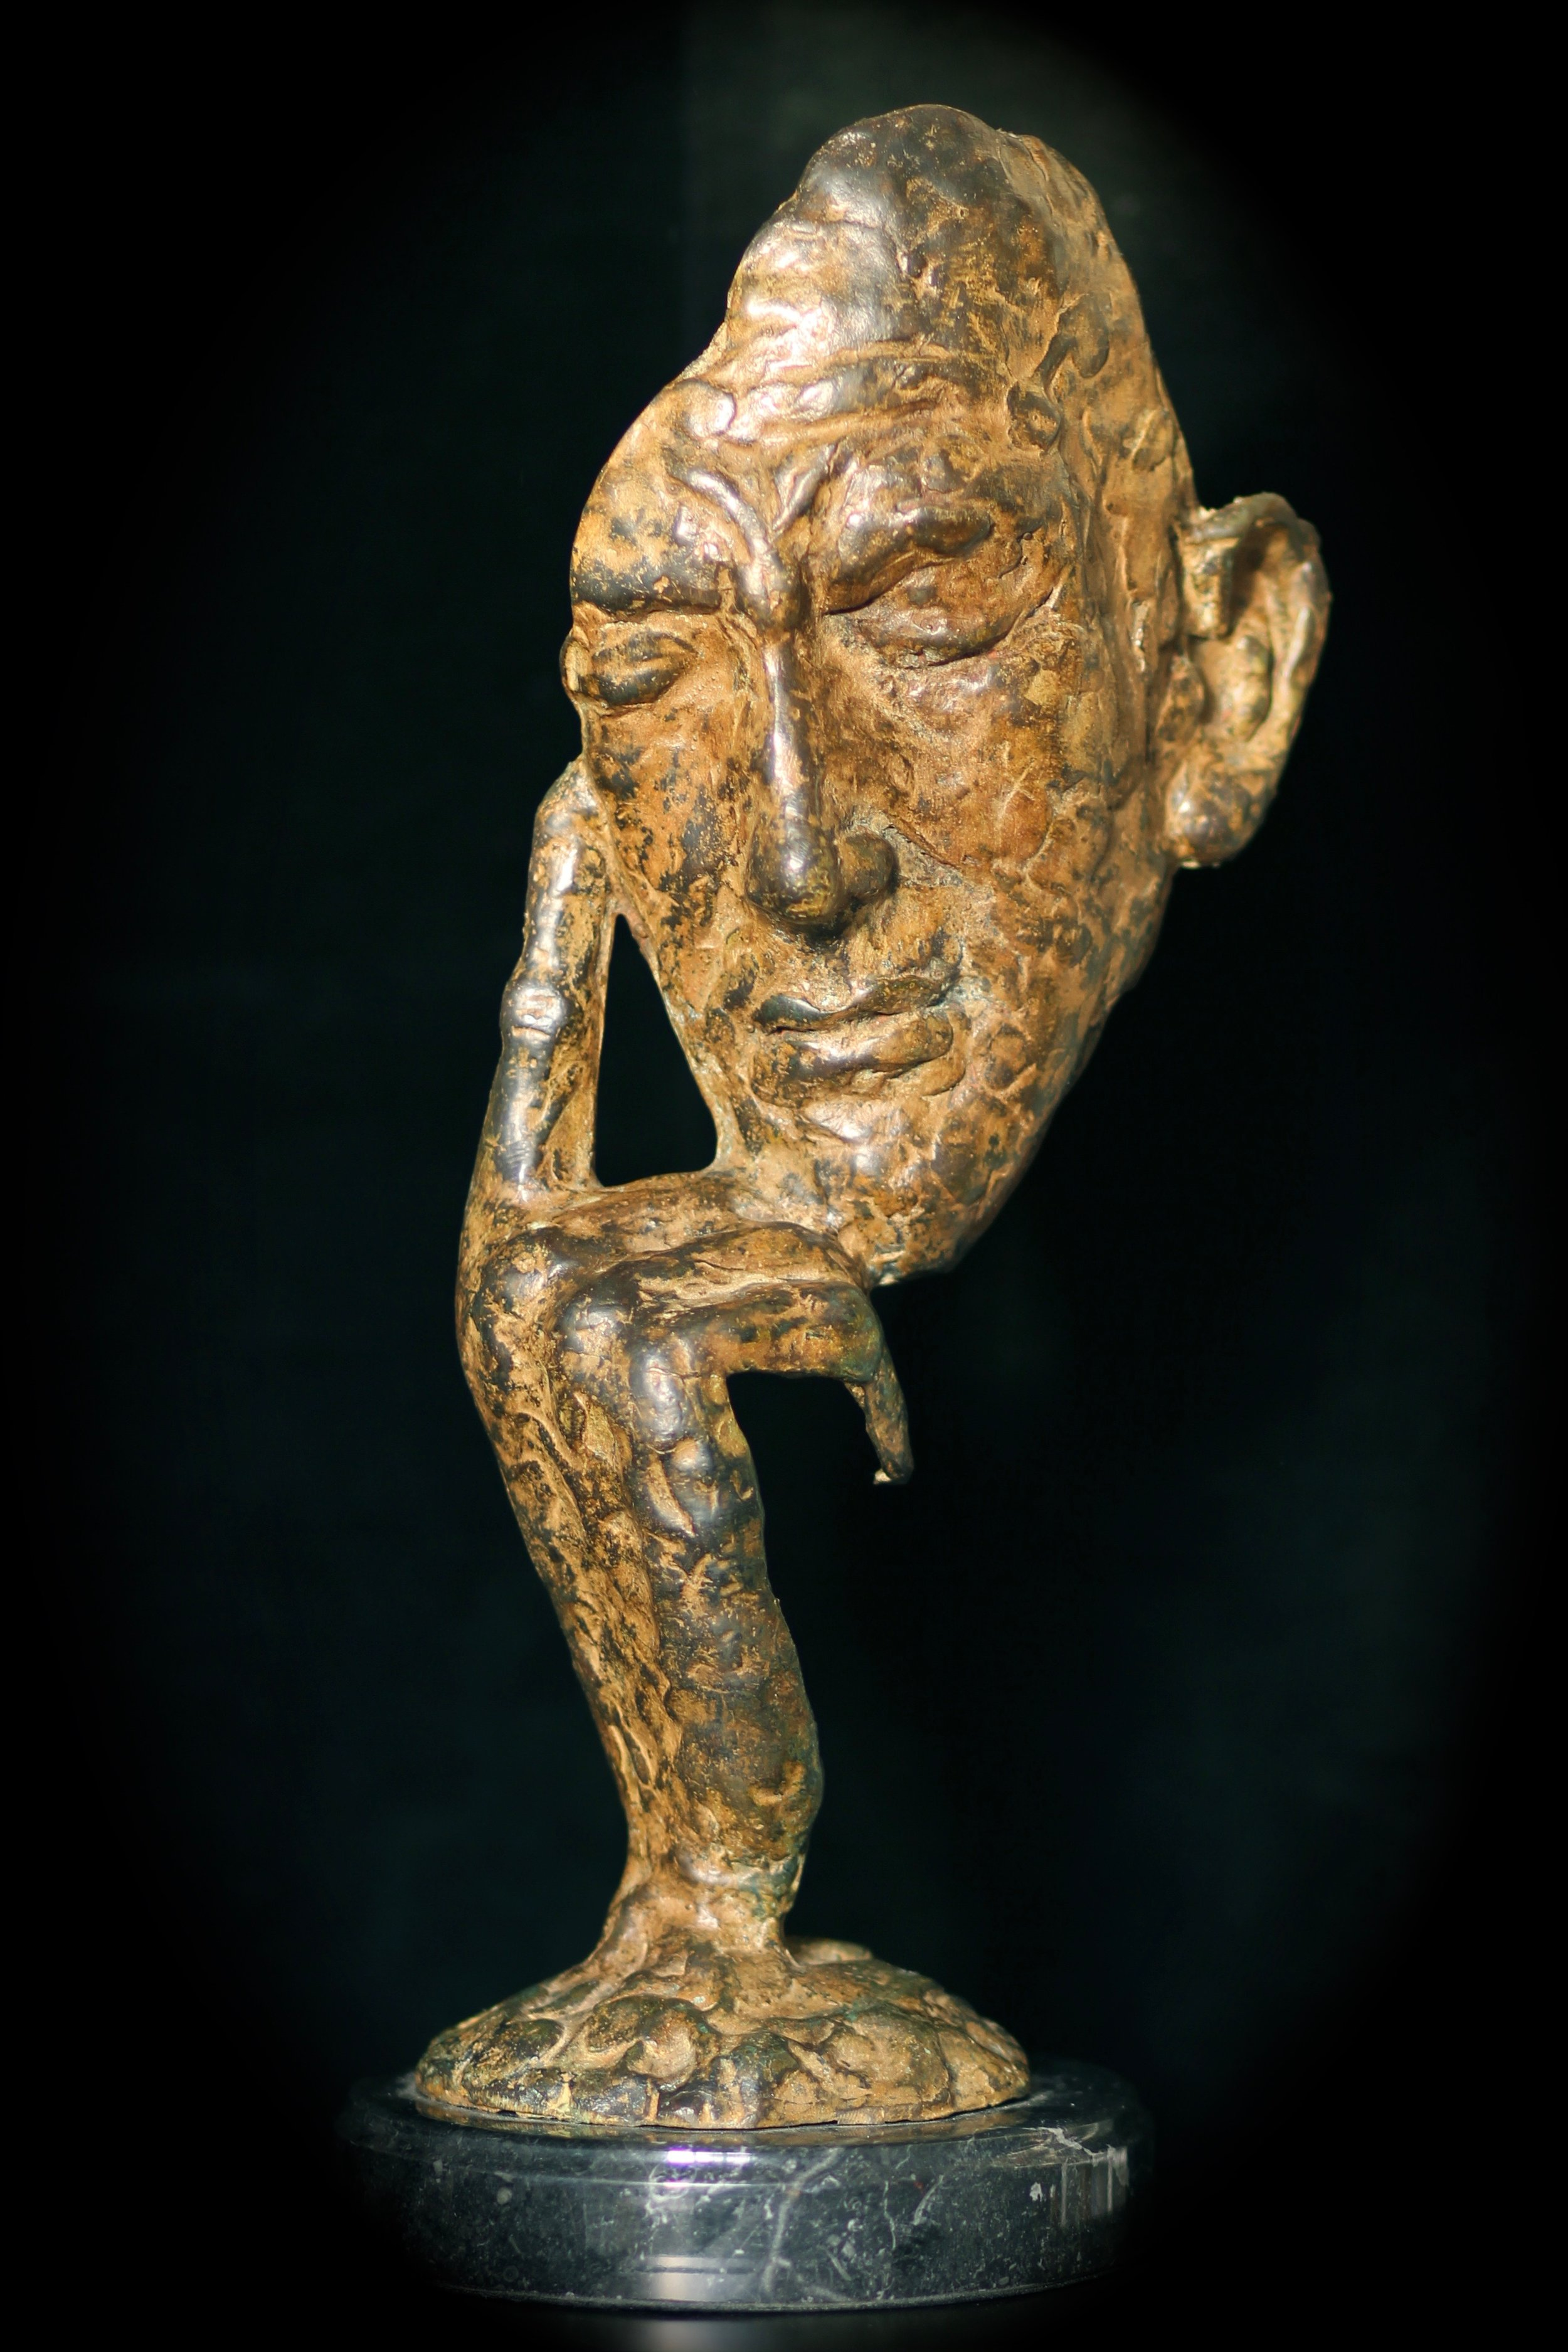 Country Life: The Mystery of the Noël Coward Bronze